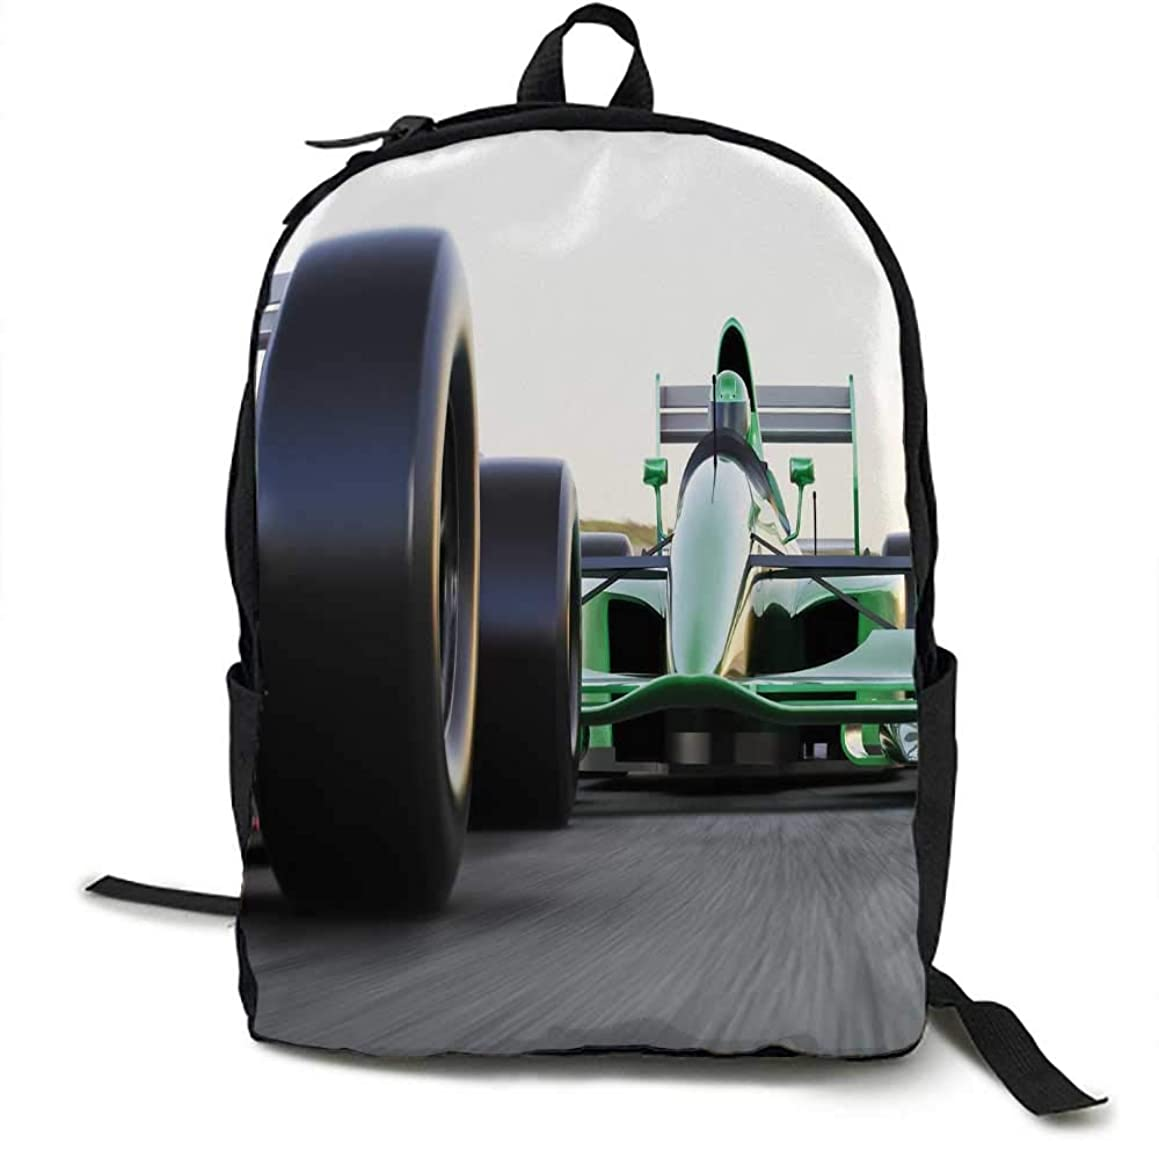 Cars Unisex classic backpack Motorized Sports Theme Indy Cars on Asphalt Road with Motion Blur Formula Race Suitable for 16-inch laptops 16.5 x 12.5 x 5.5 Inch Grey Black Green